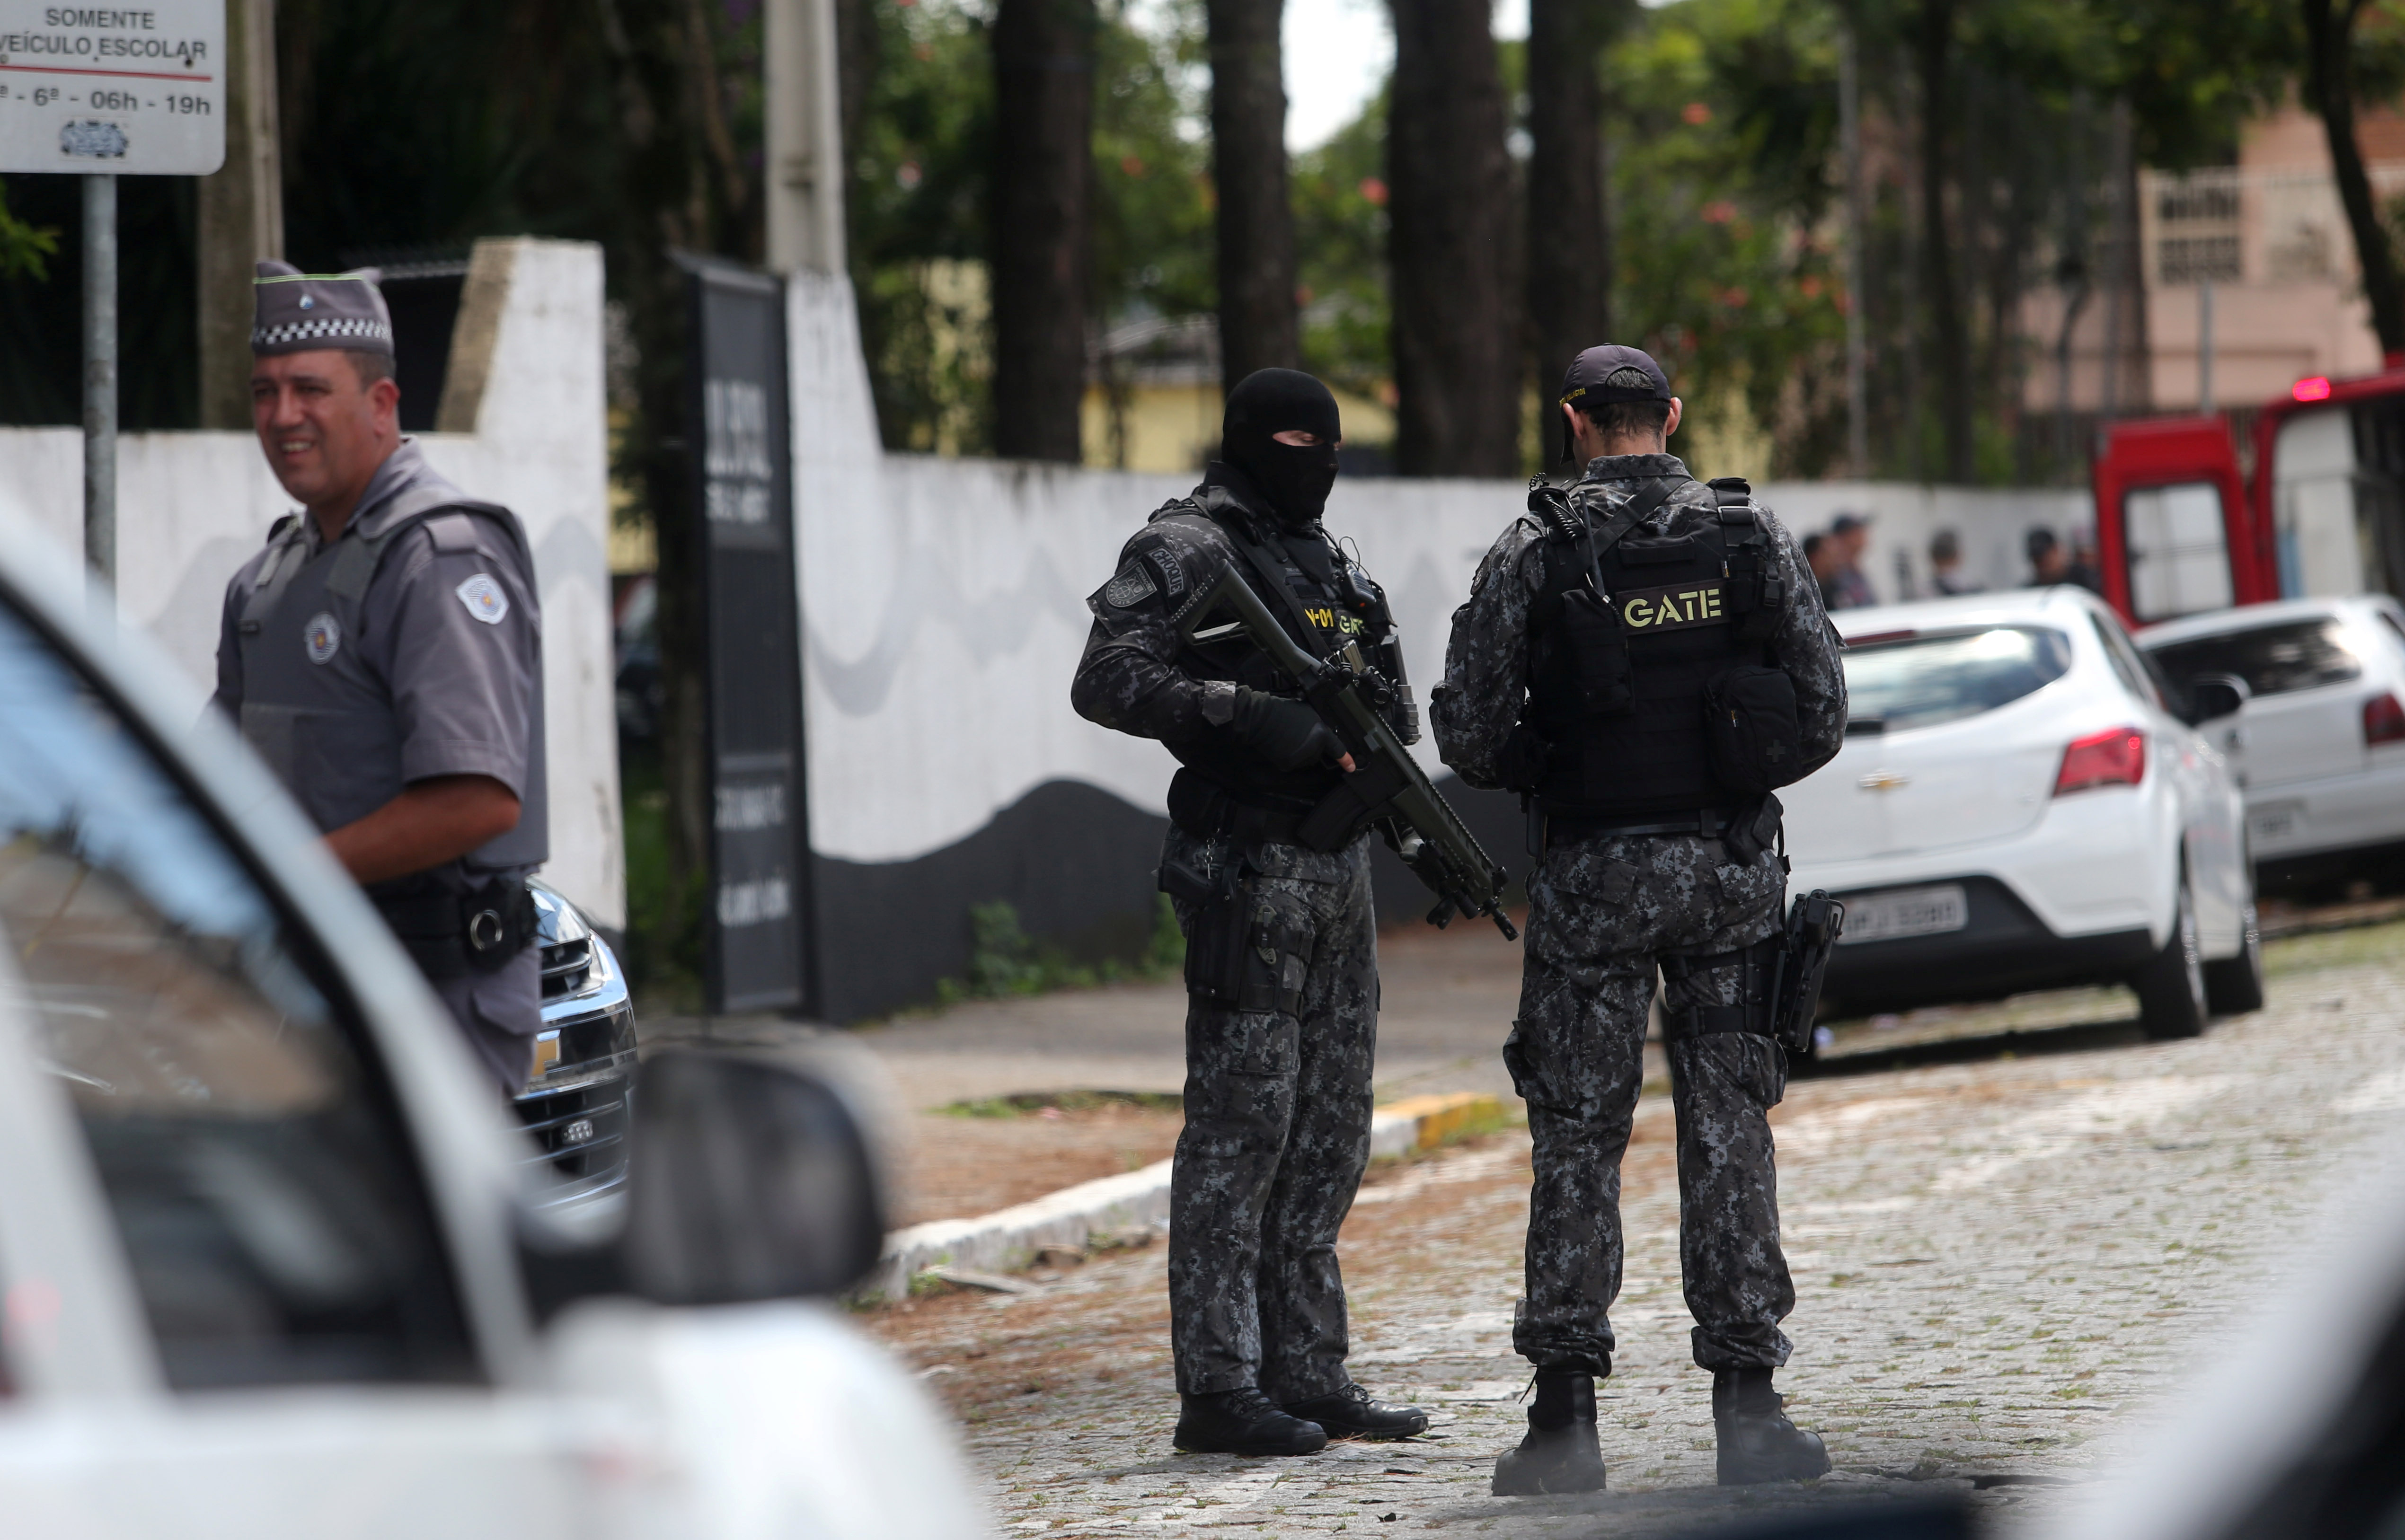 Policemen are seen at the Raul Brasil school after a shooting in Suzano, Sao Paulo state, Brazil March 13, 2019. (REUTERS/Amanda Perobelli)